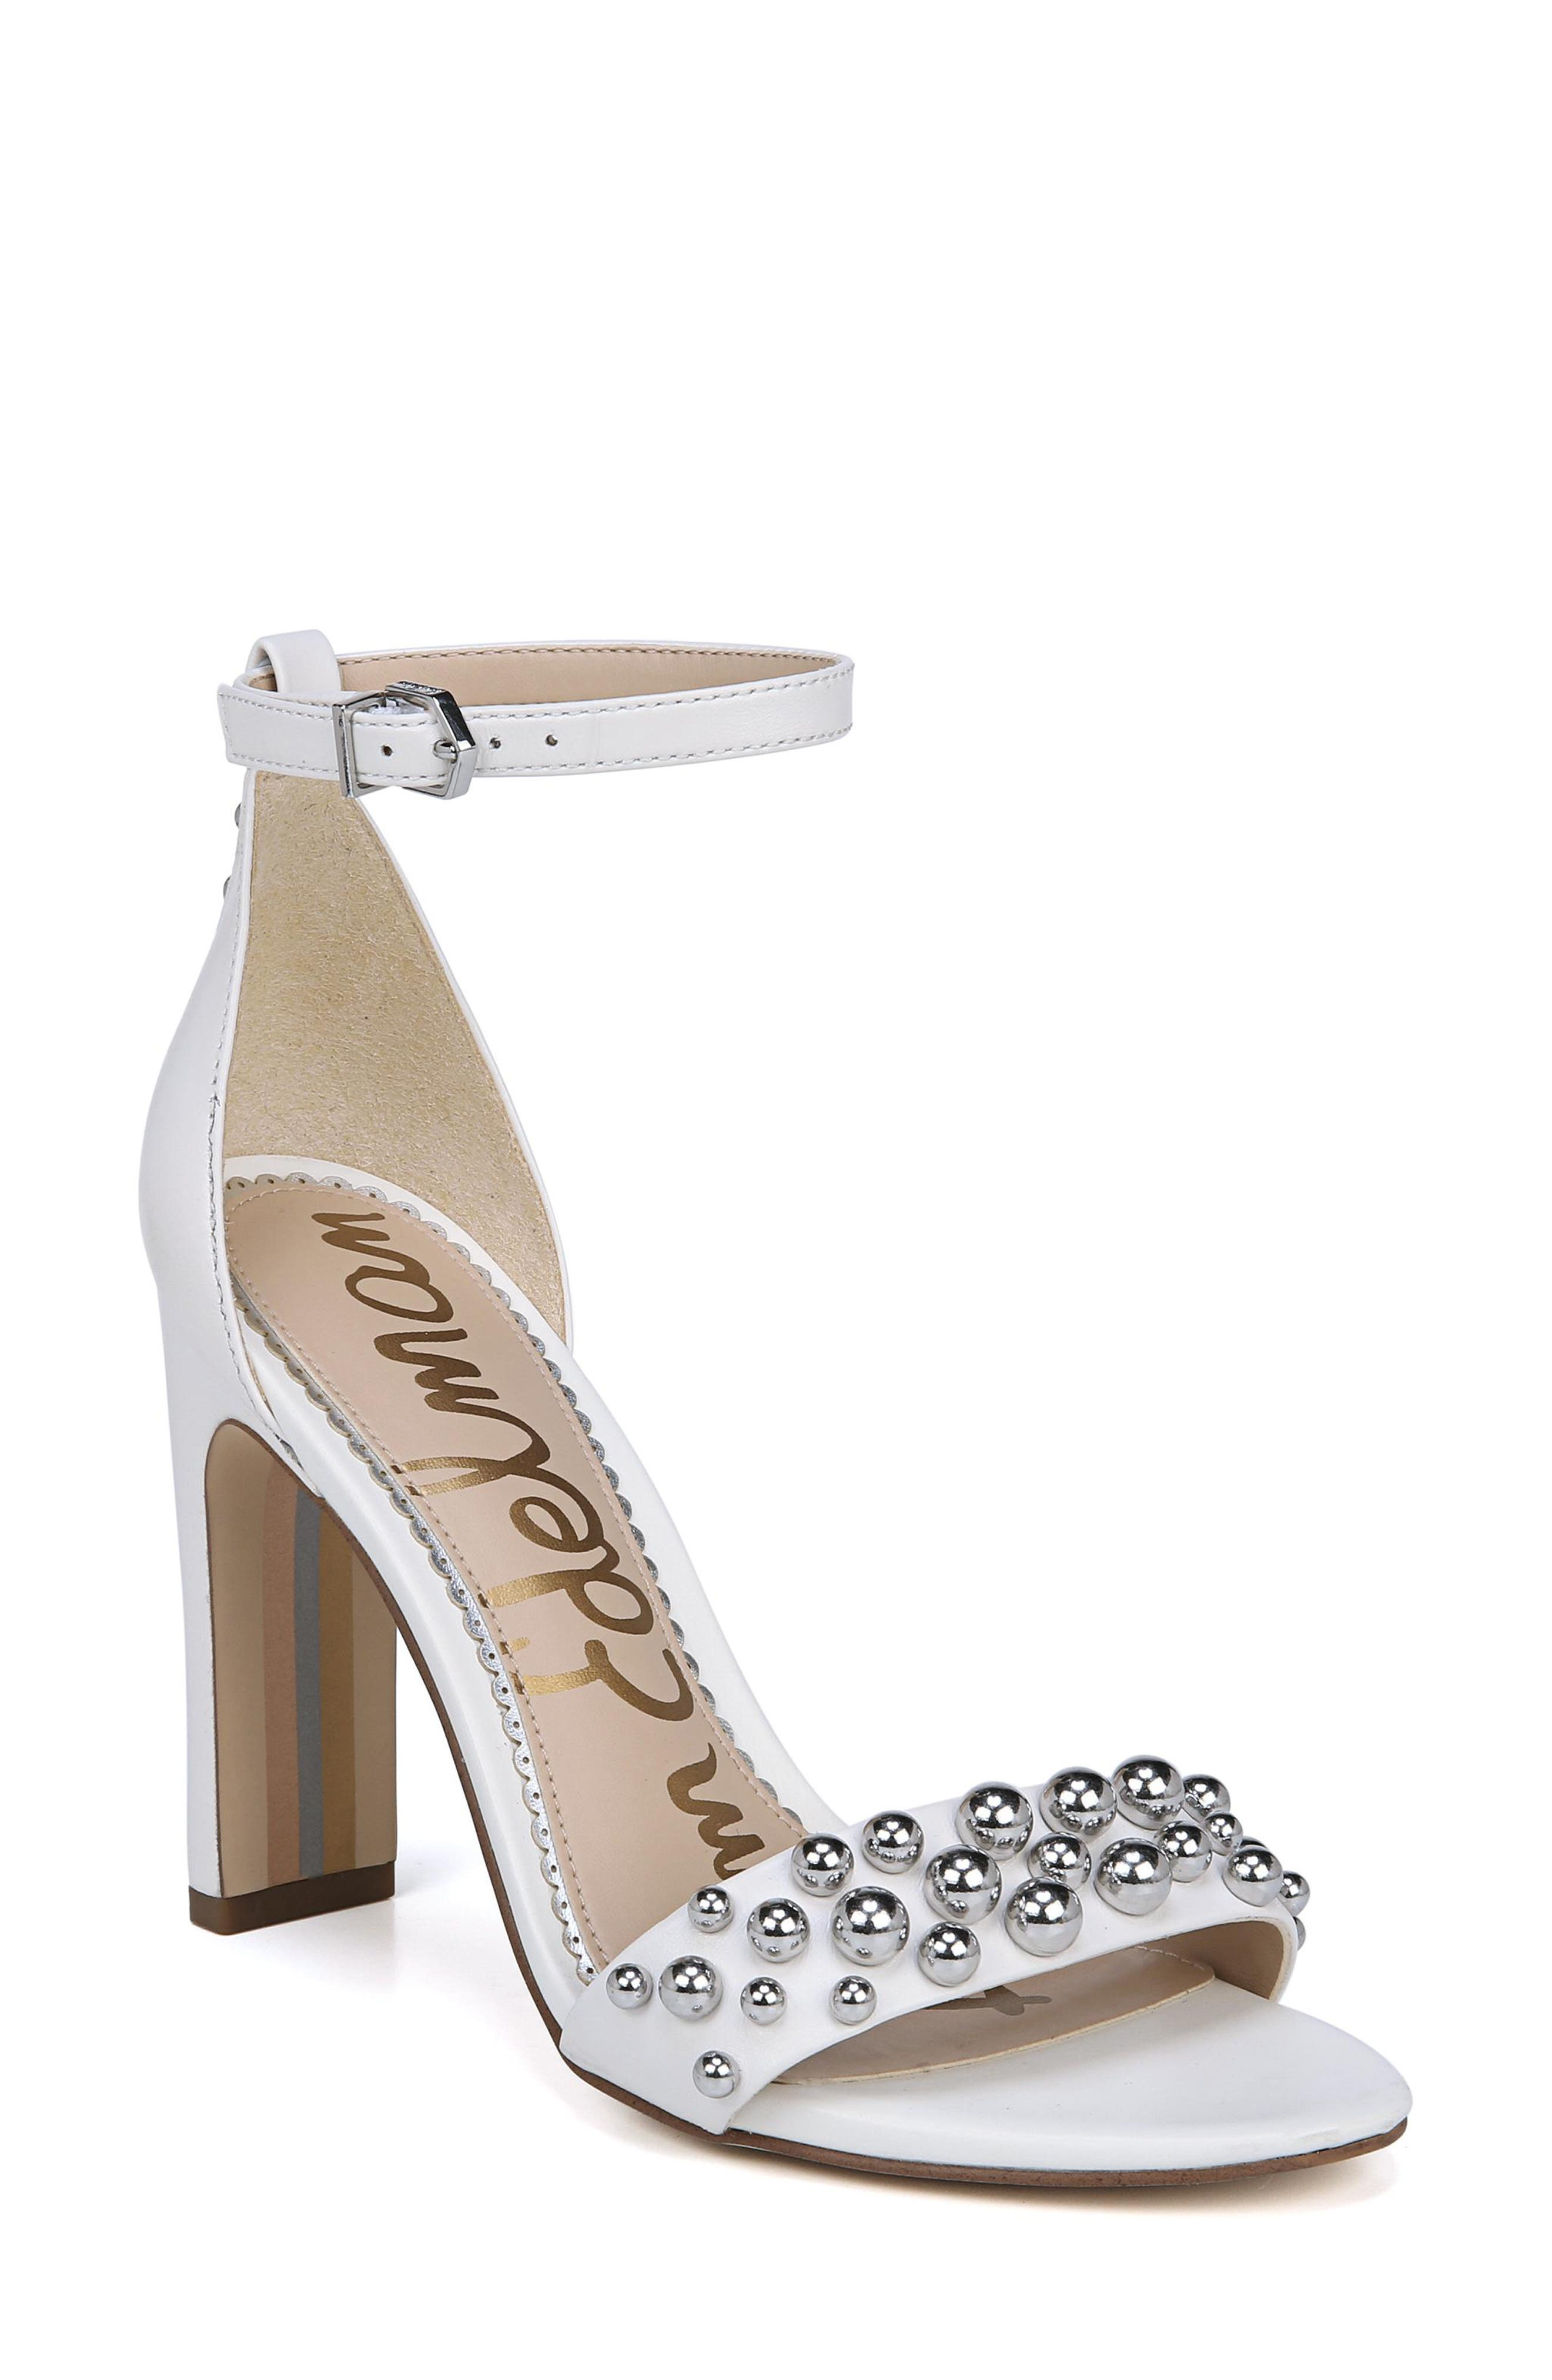 Yoshi Studded Ankle Strap Sandal,                             Main thumbnail 1, color,                             BRIGHT WHITE LEATHER